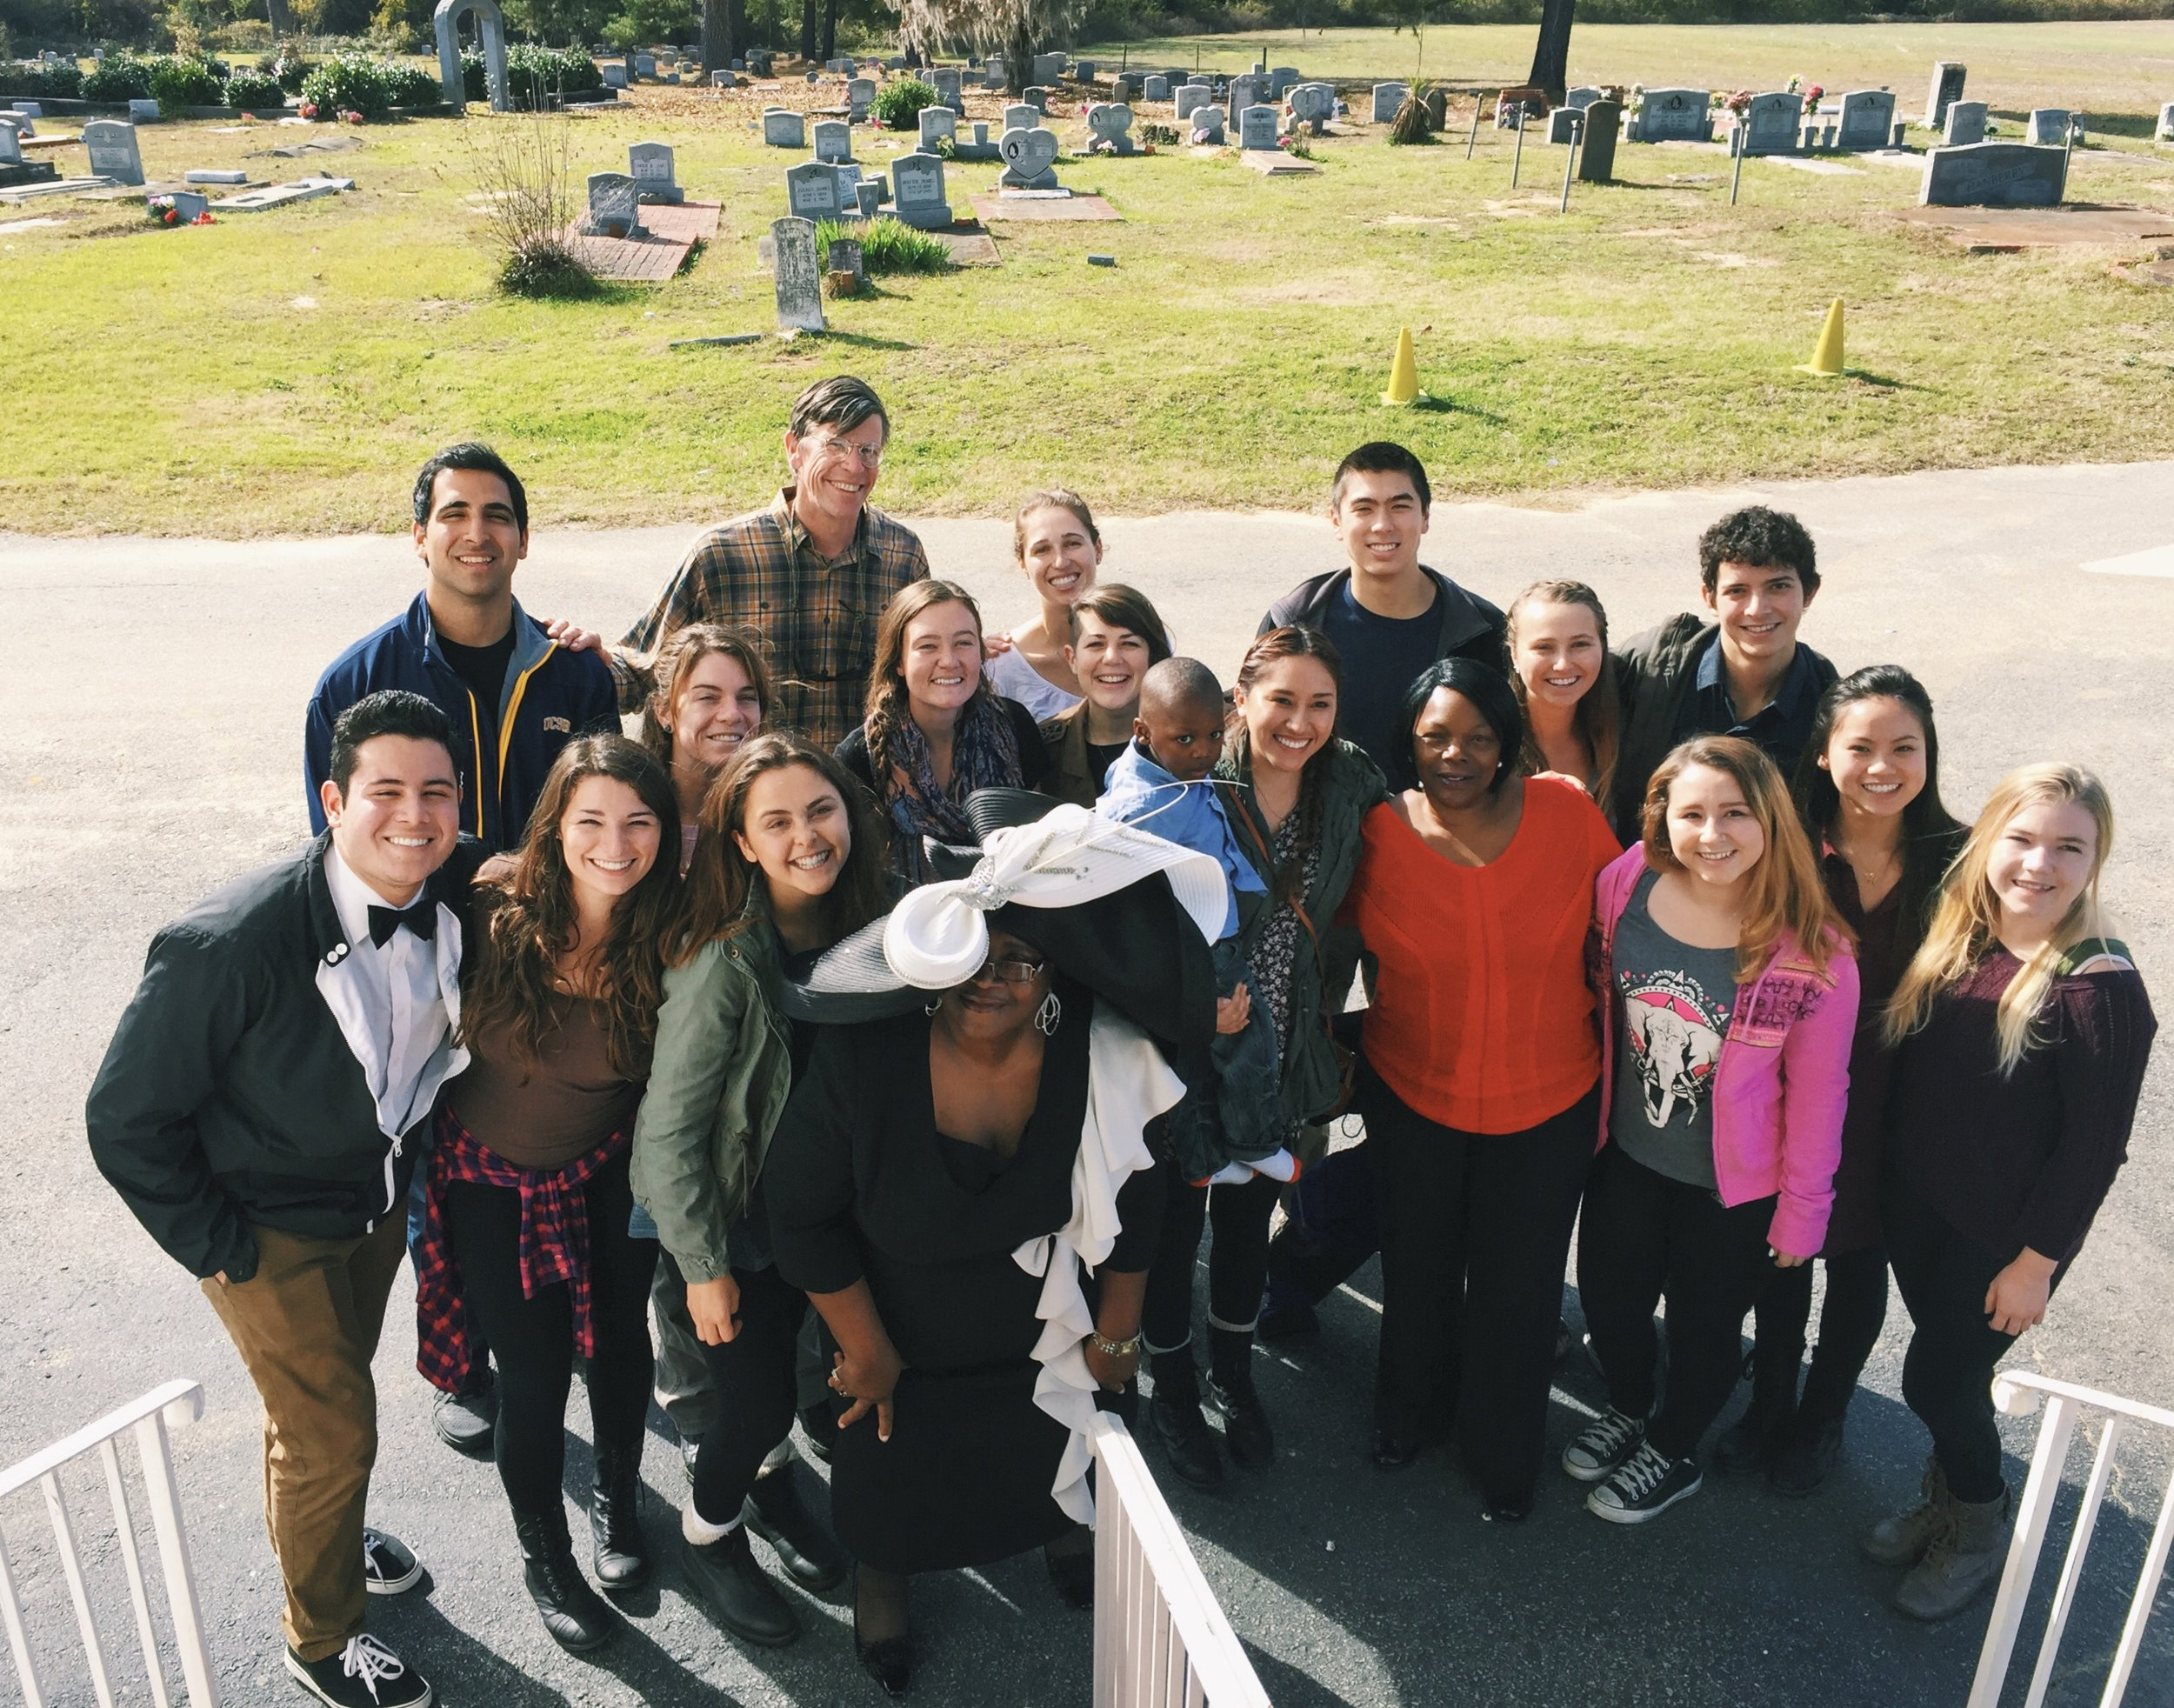 Volunteers from University of California Santa Barbara attend gospel church service in South Carolina